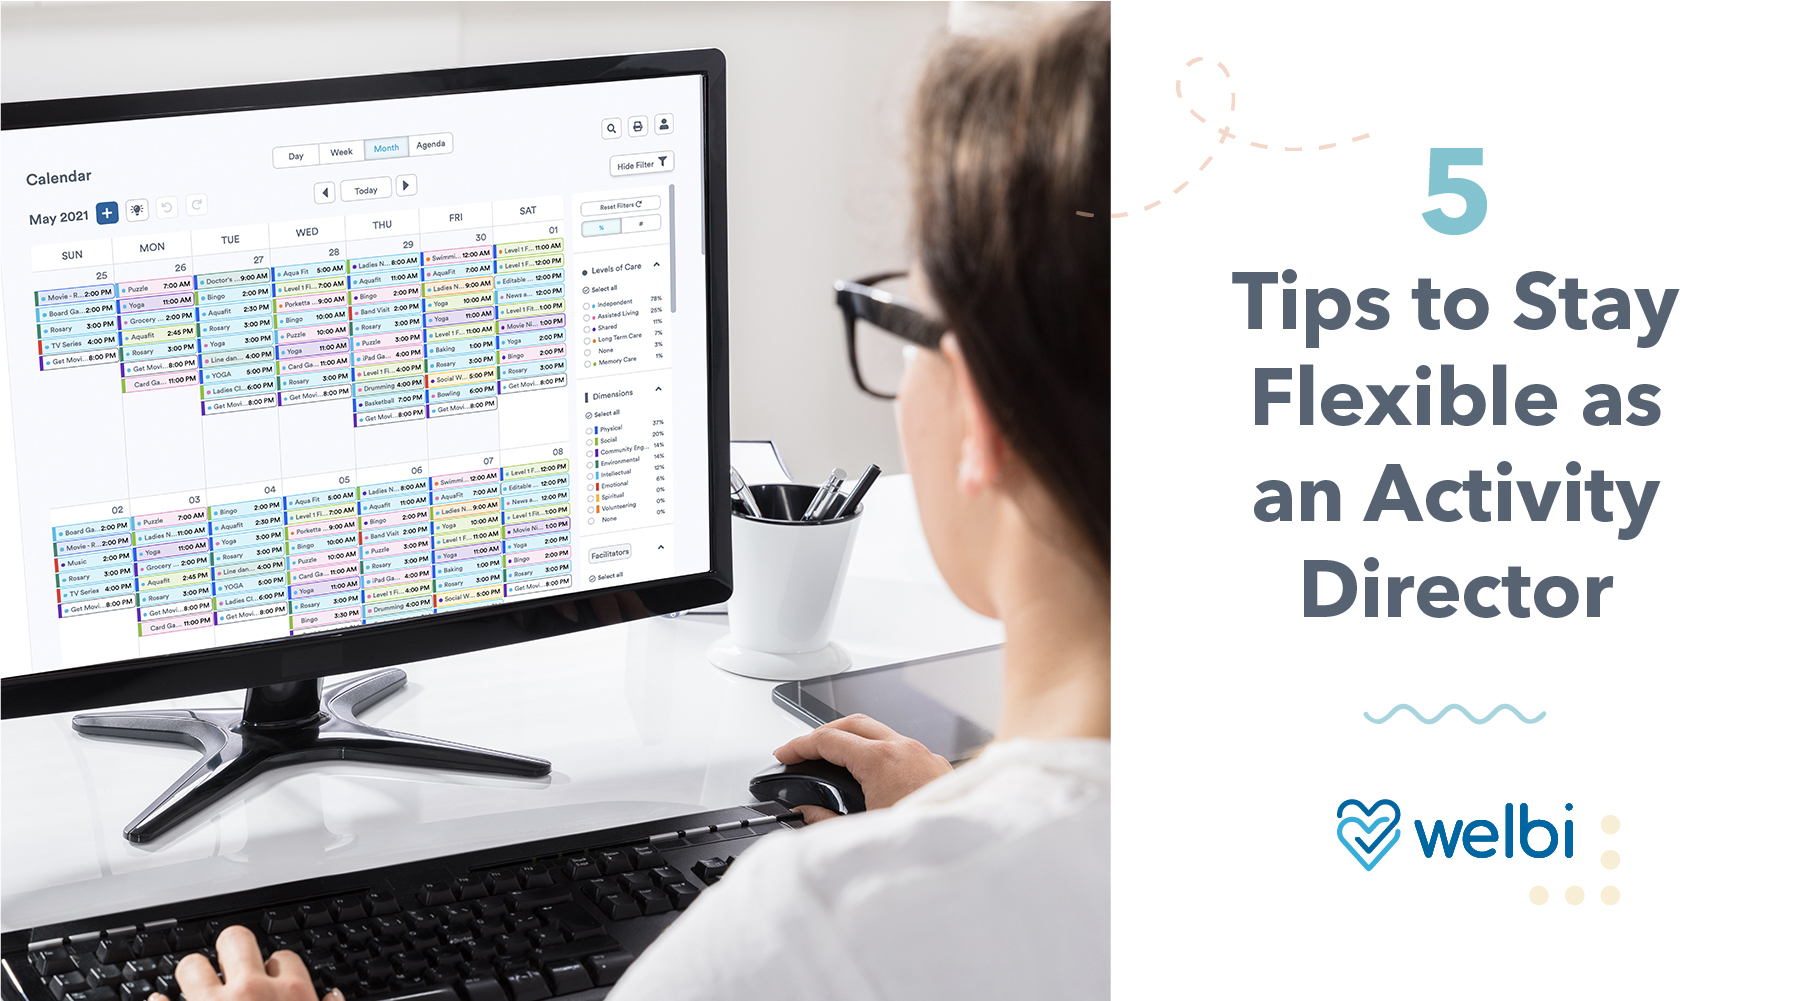 5 Tips to Stay Flexible as an Activity Director